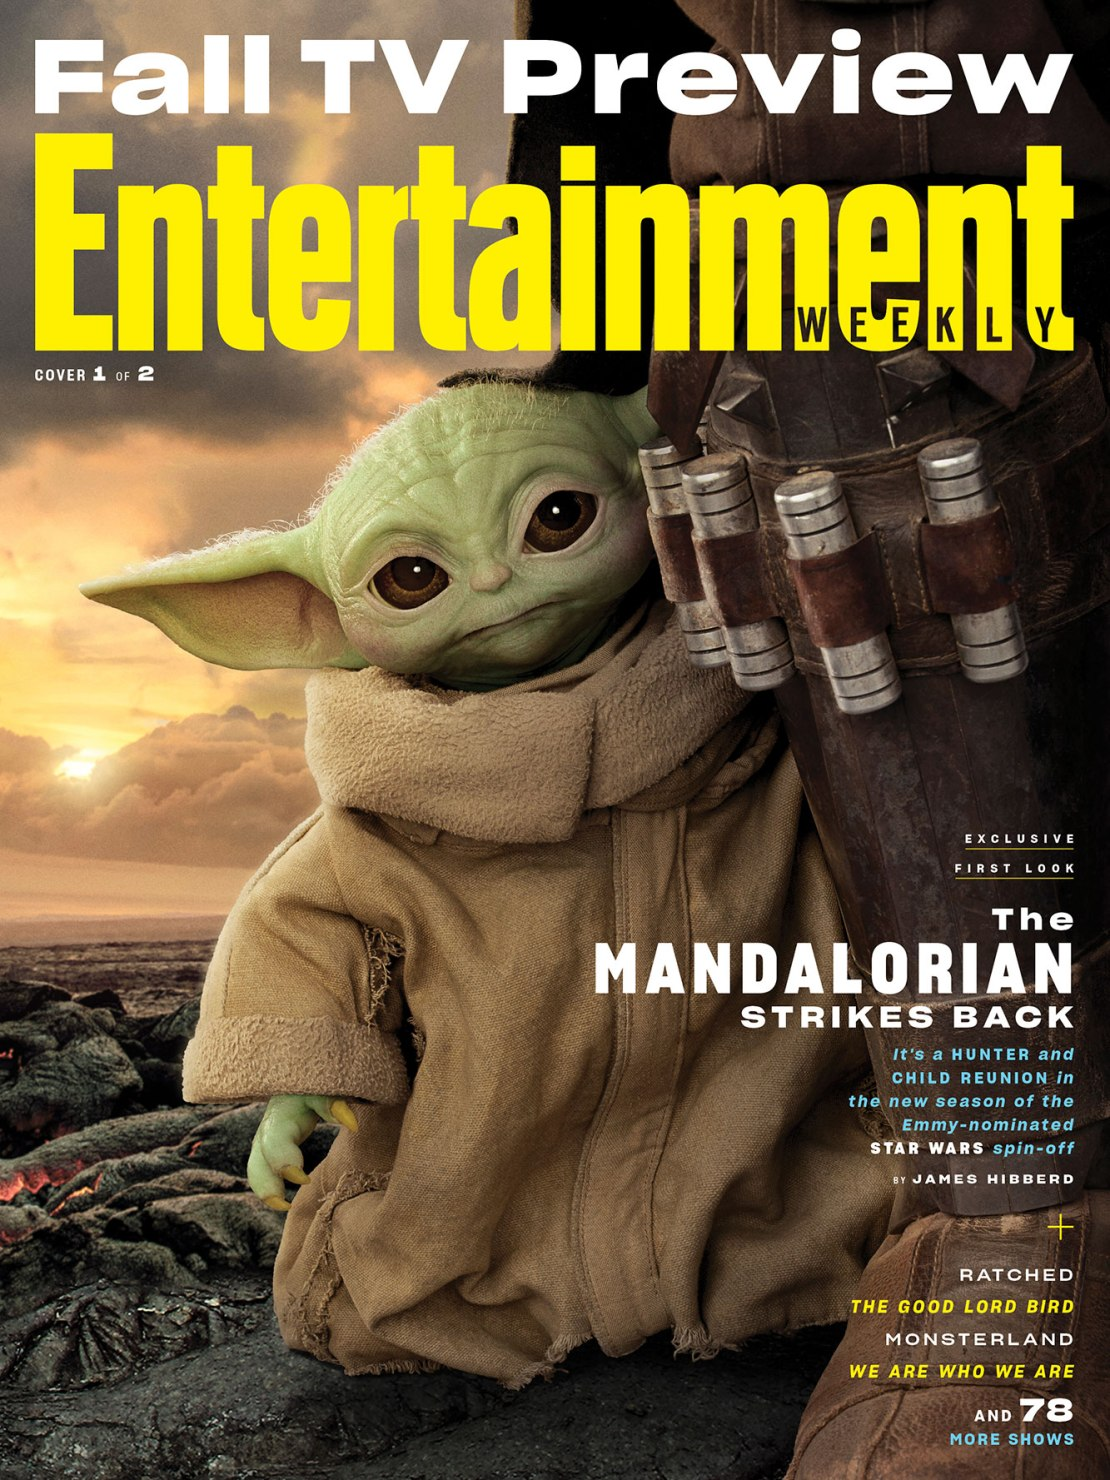 EW Weekly The Mandalorian Cover The Child